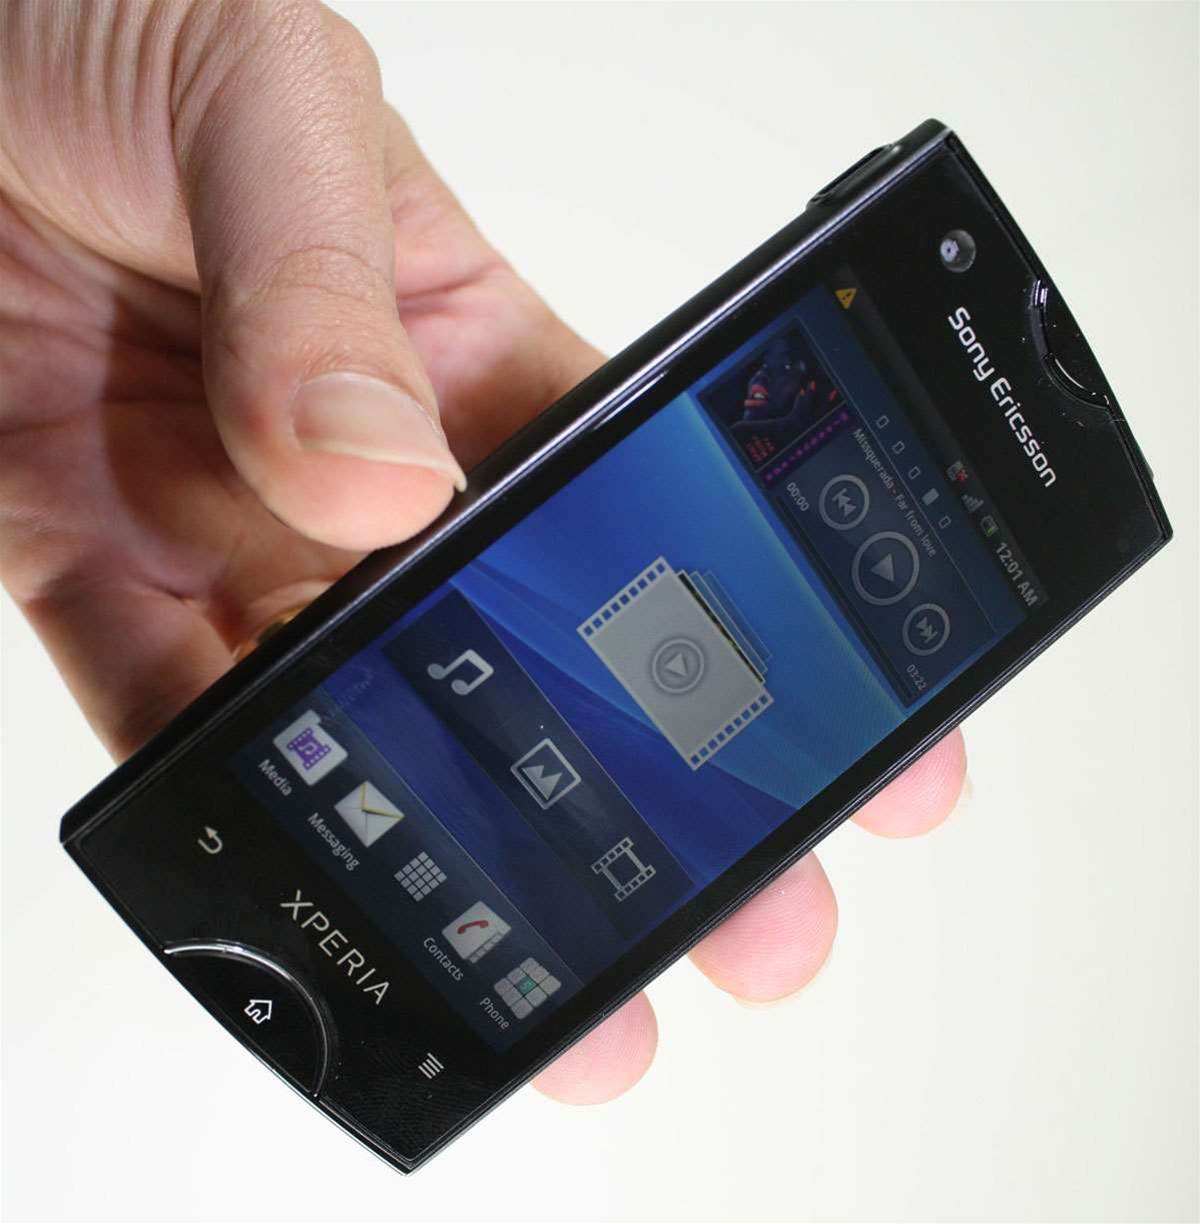 In Pictures: Sony Ericsson Xperia ray unboxing and hands-on